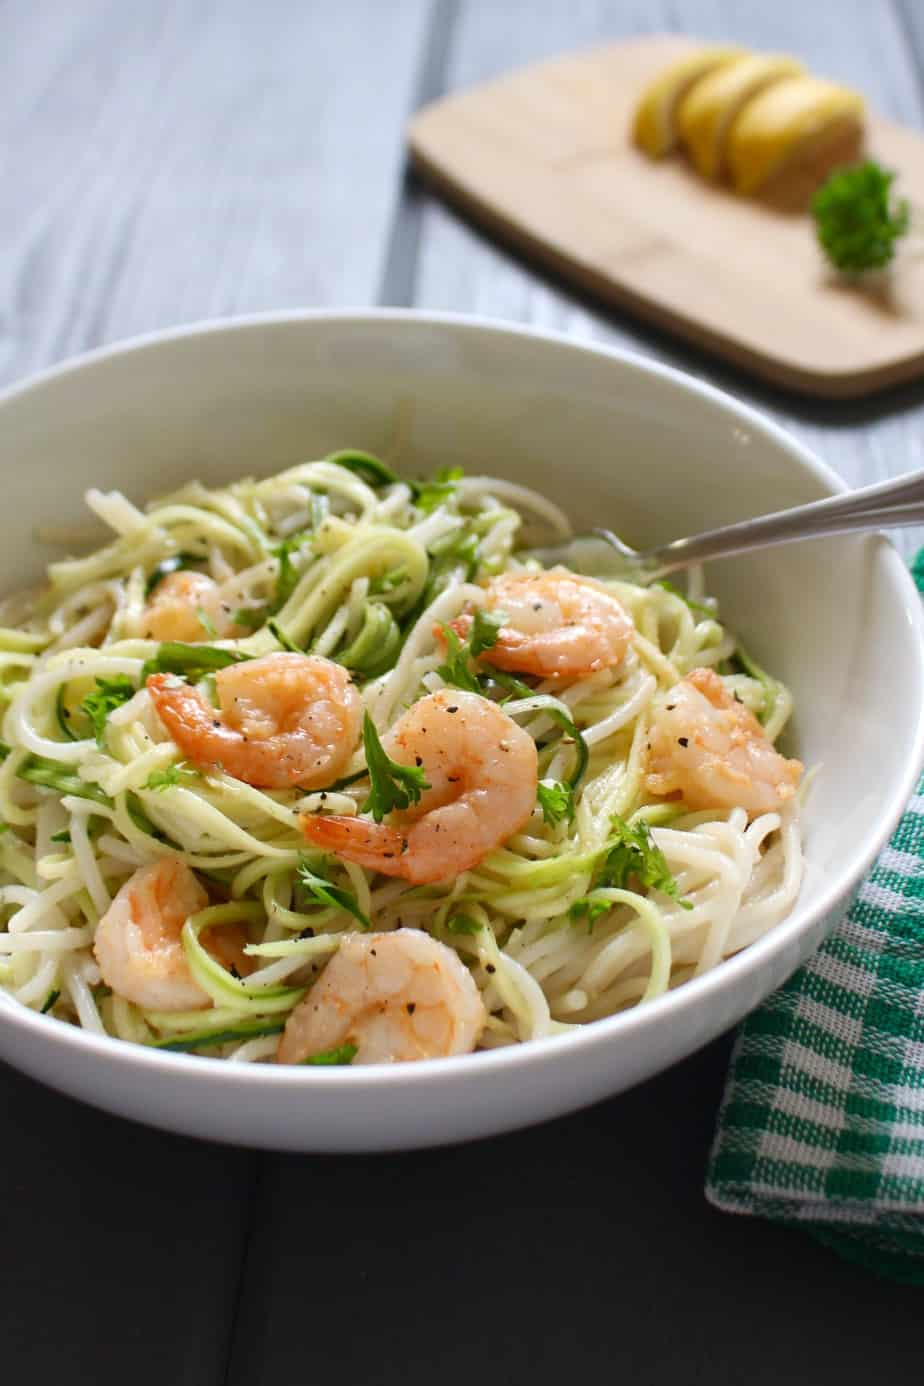 Spicy Shrimp with Coconut Milk and Zucchini Noodles | Frugal Nutrition